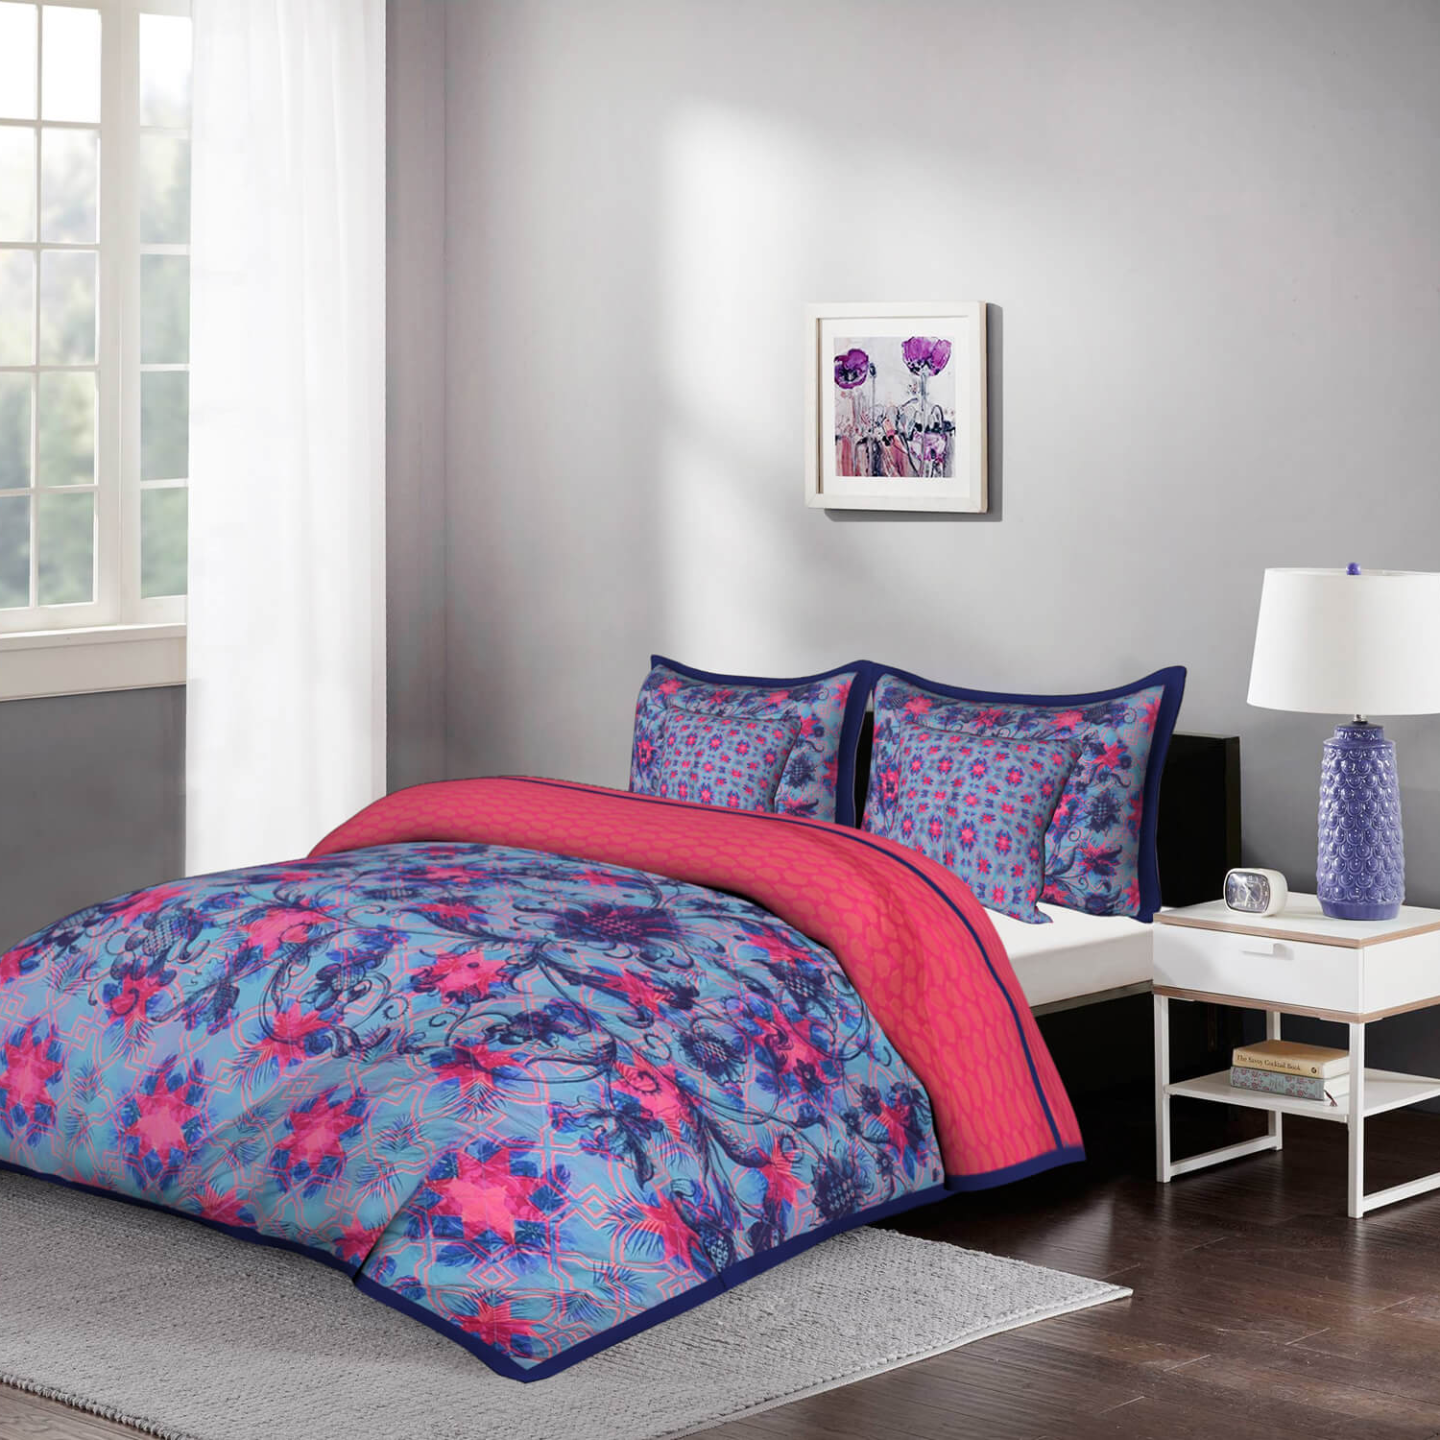 Psychedelic Abstract 5 Piece King Size Cotton Quilted Bedspread